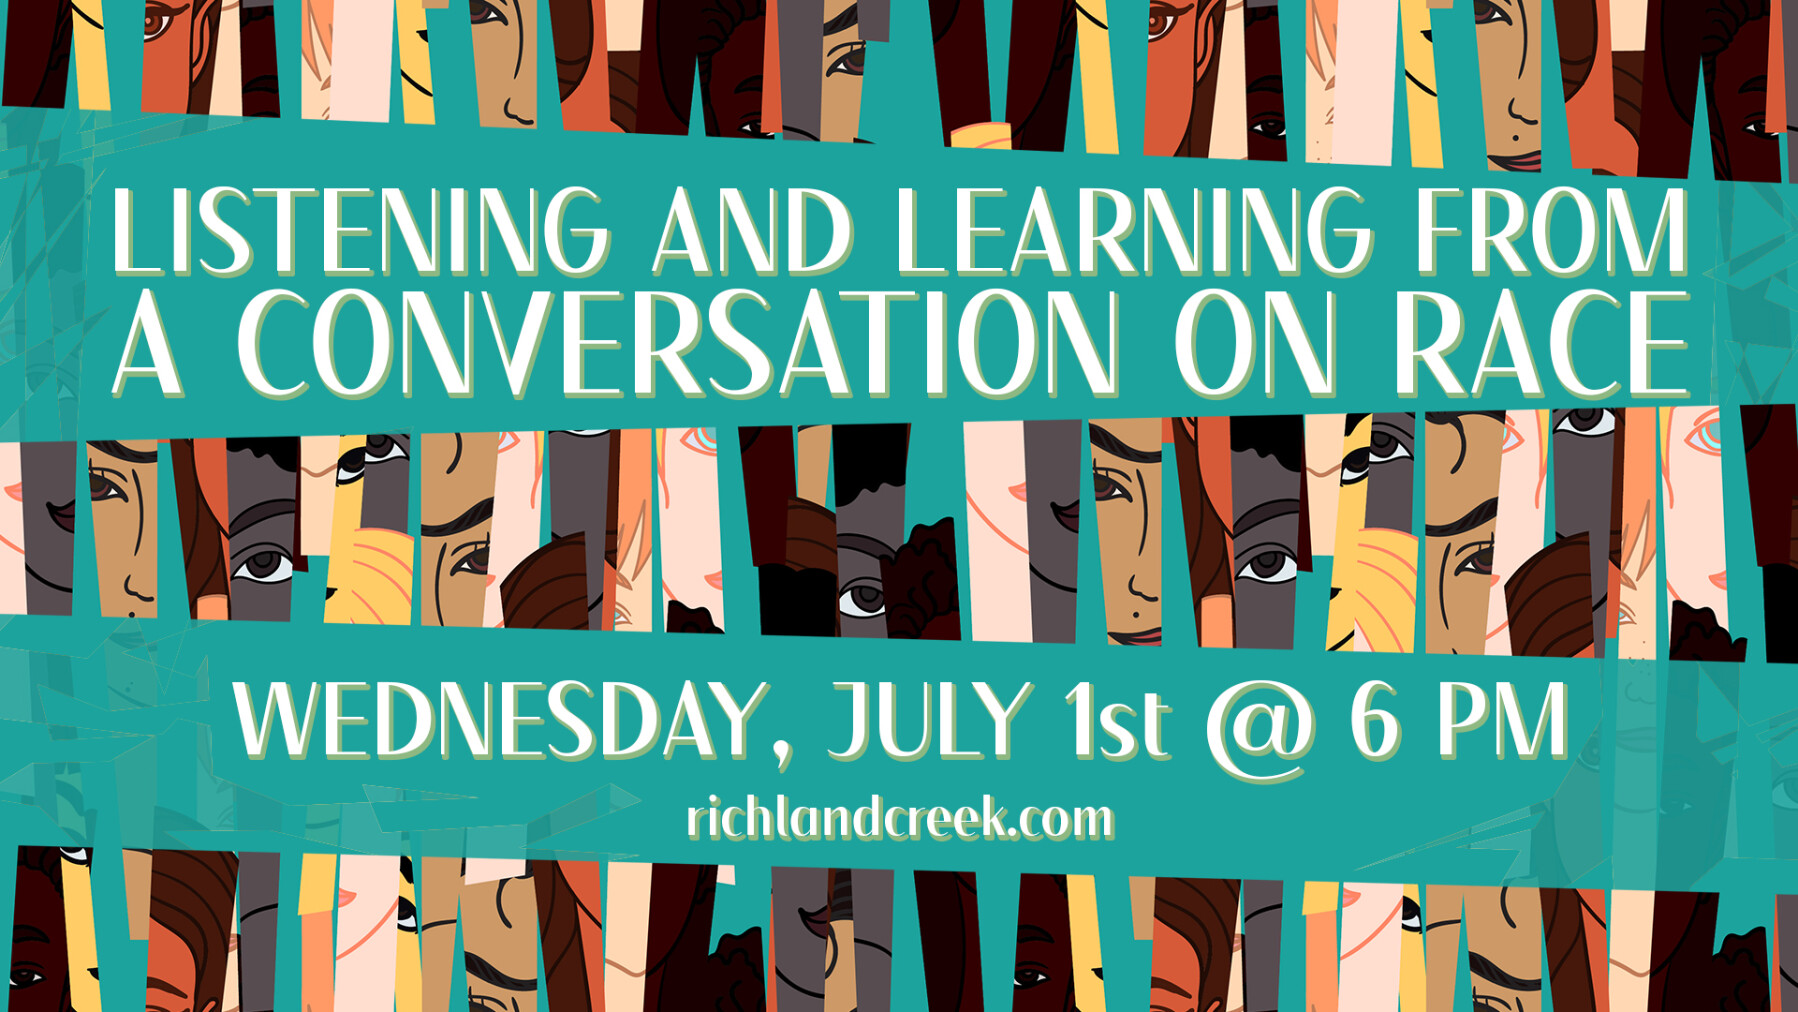 Listening And Learning From A Conversation On Race